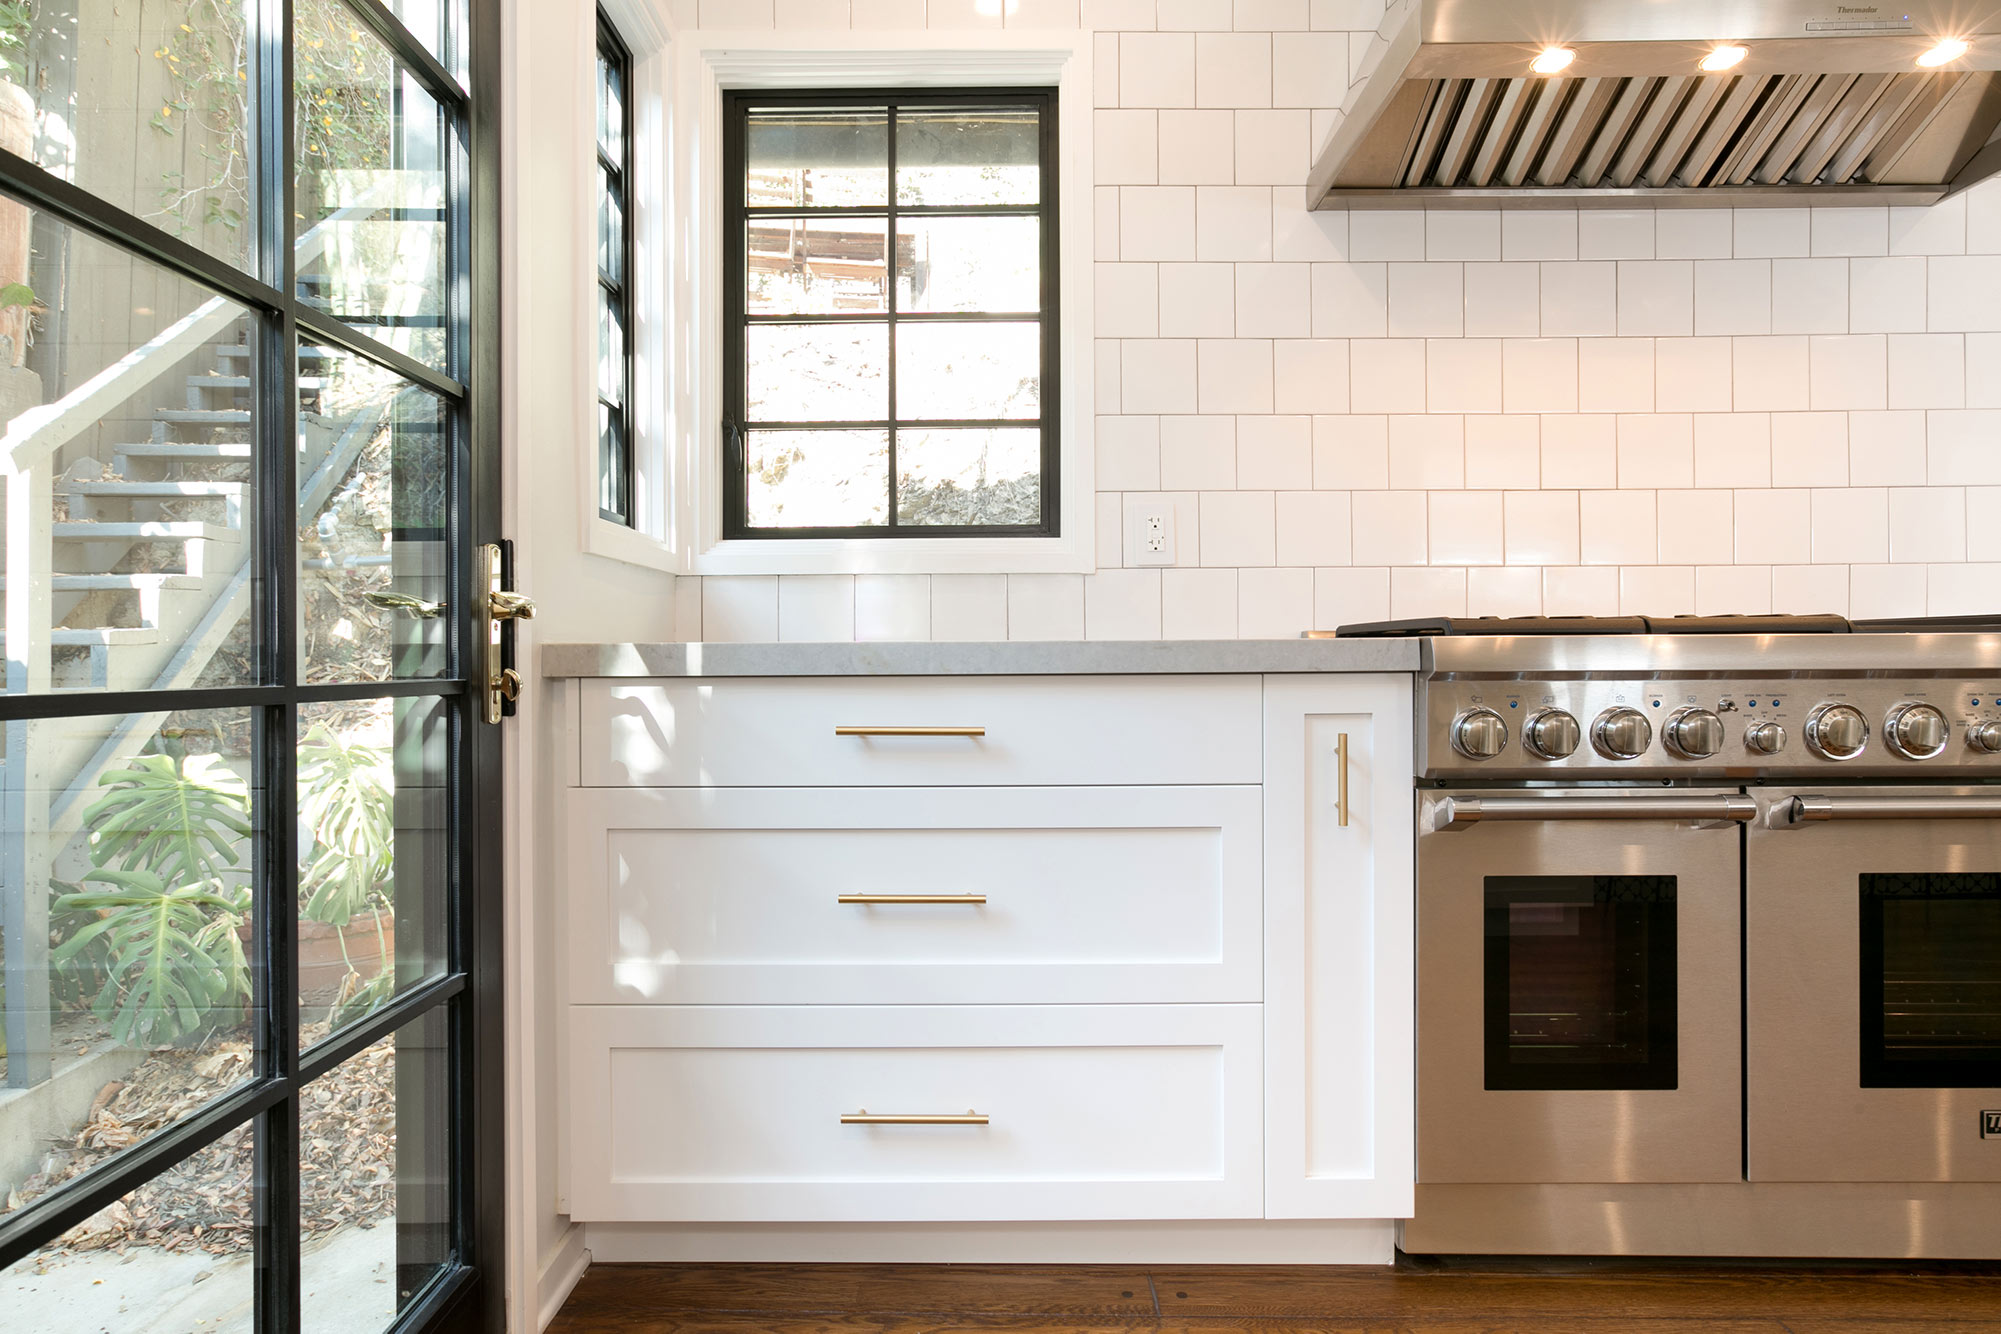 "The new open kitchen features custom-made white shaker cabinets with gold pulls and knobs, black fixtures, new hardwood floors, white 5""X5"" ceramic tile backsplash, Caesarstone Noble Grey countertops, breakfast bar with pattern cement tile detail, Thermador appliances and new wood clad windows painted black."